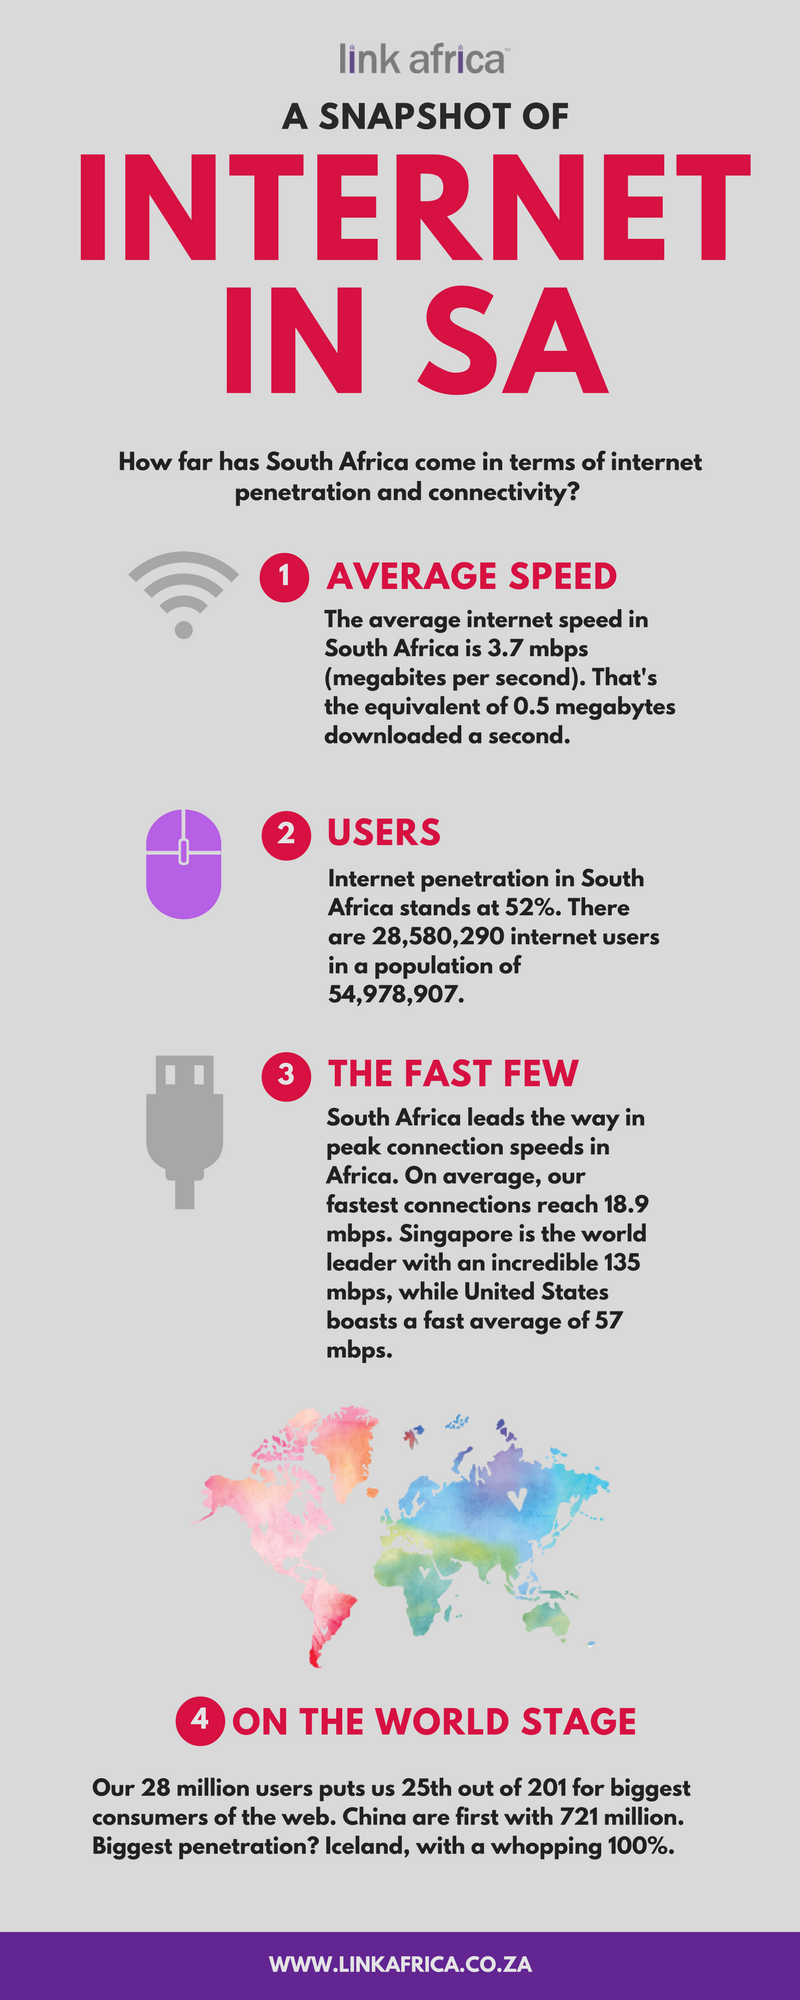 internet-in-sa-infographic-1